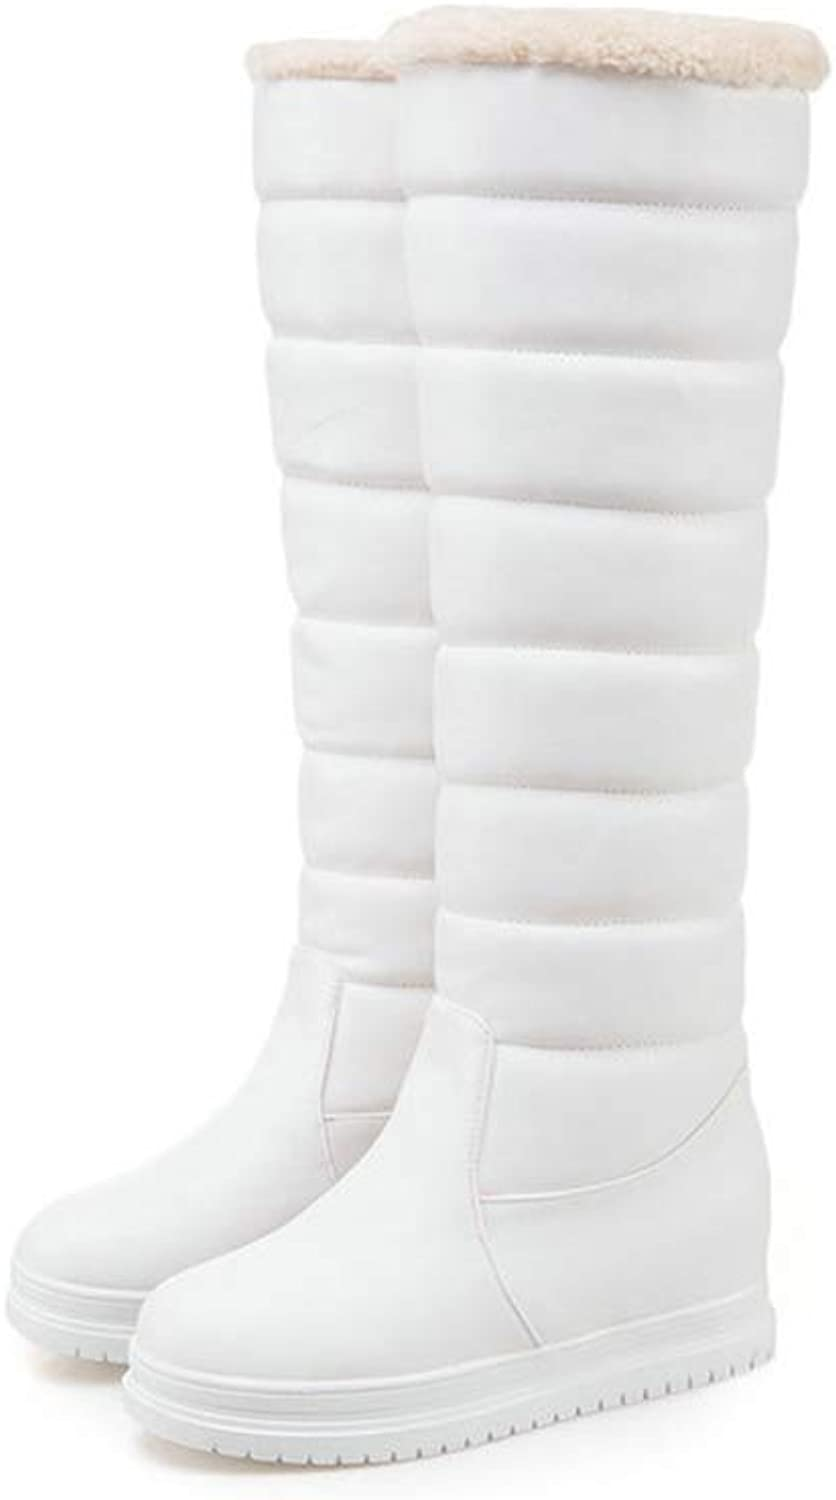 Women Fashion Knee High Boots Winter Snow Boots Slip On Round Toe Wedges Heel Thigh High Booties